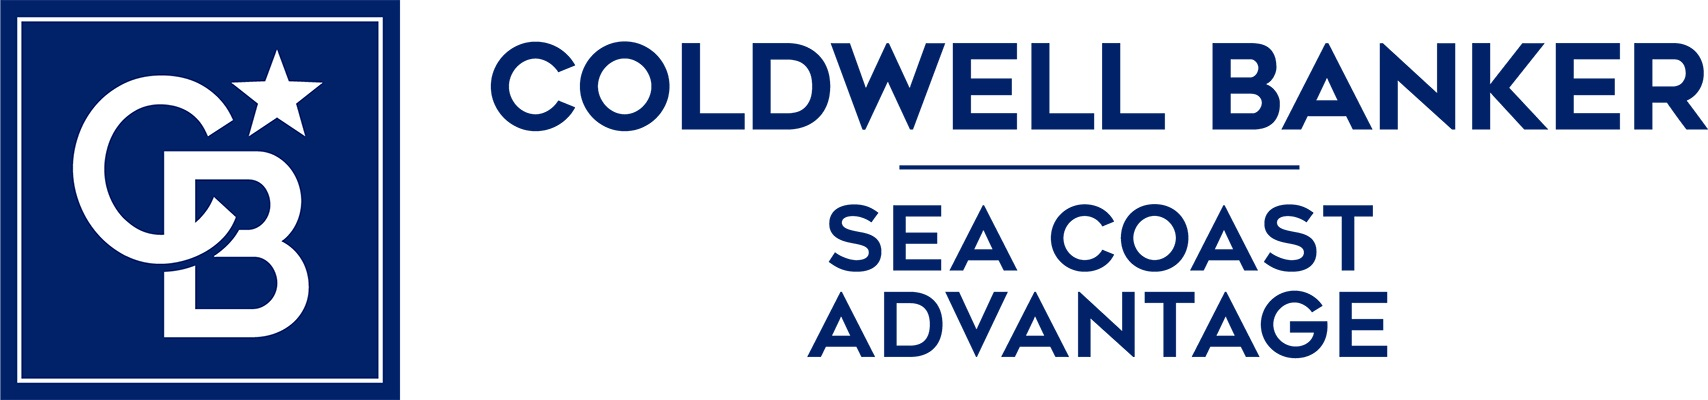 Wendy Fountain - Coldwell Banker Sea Coast Advantage Realty